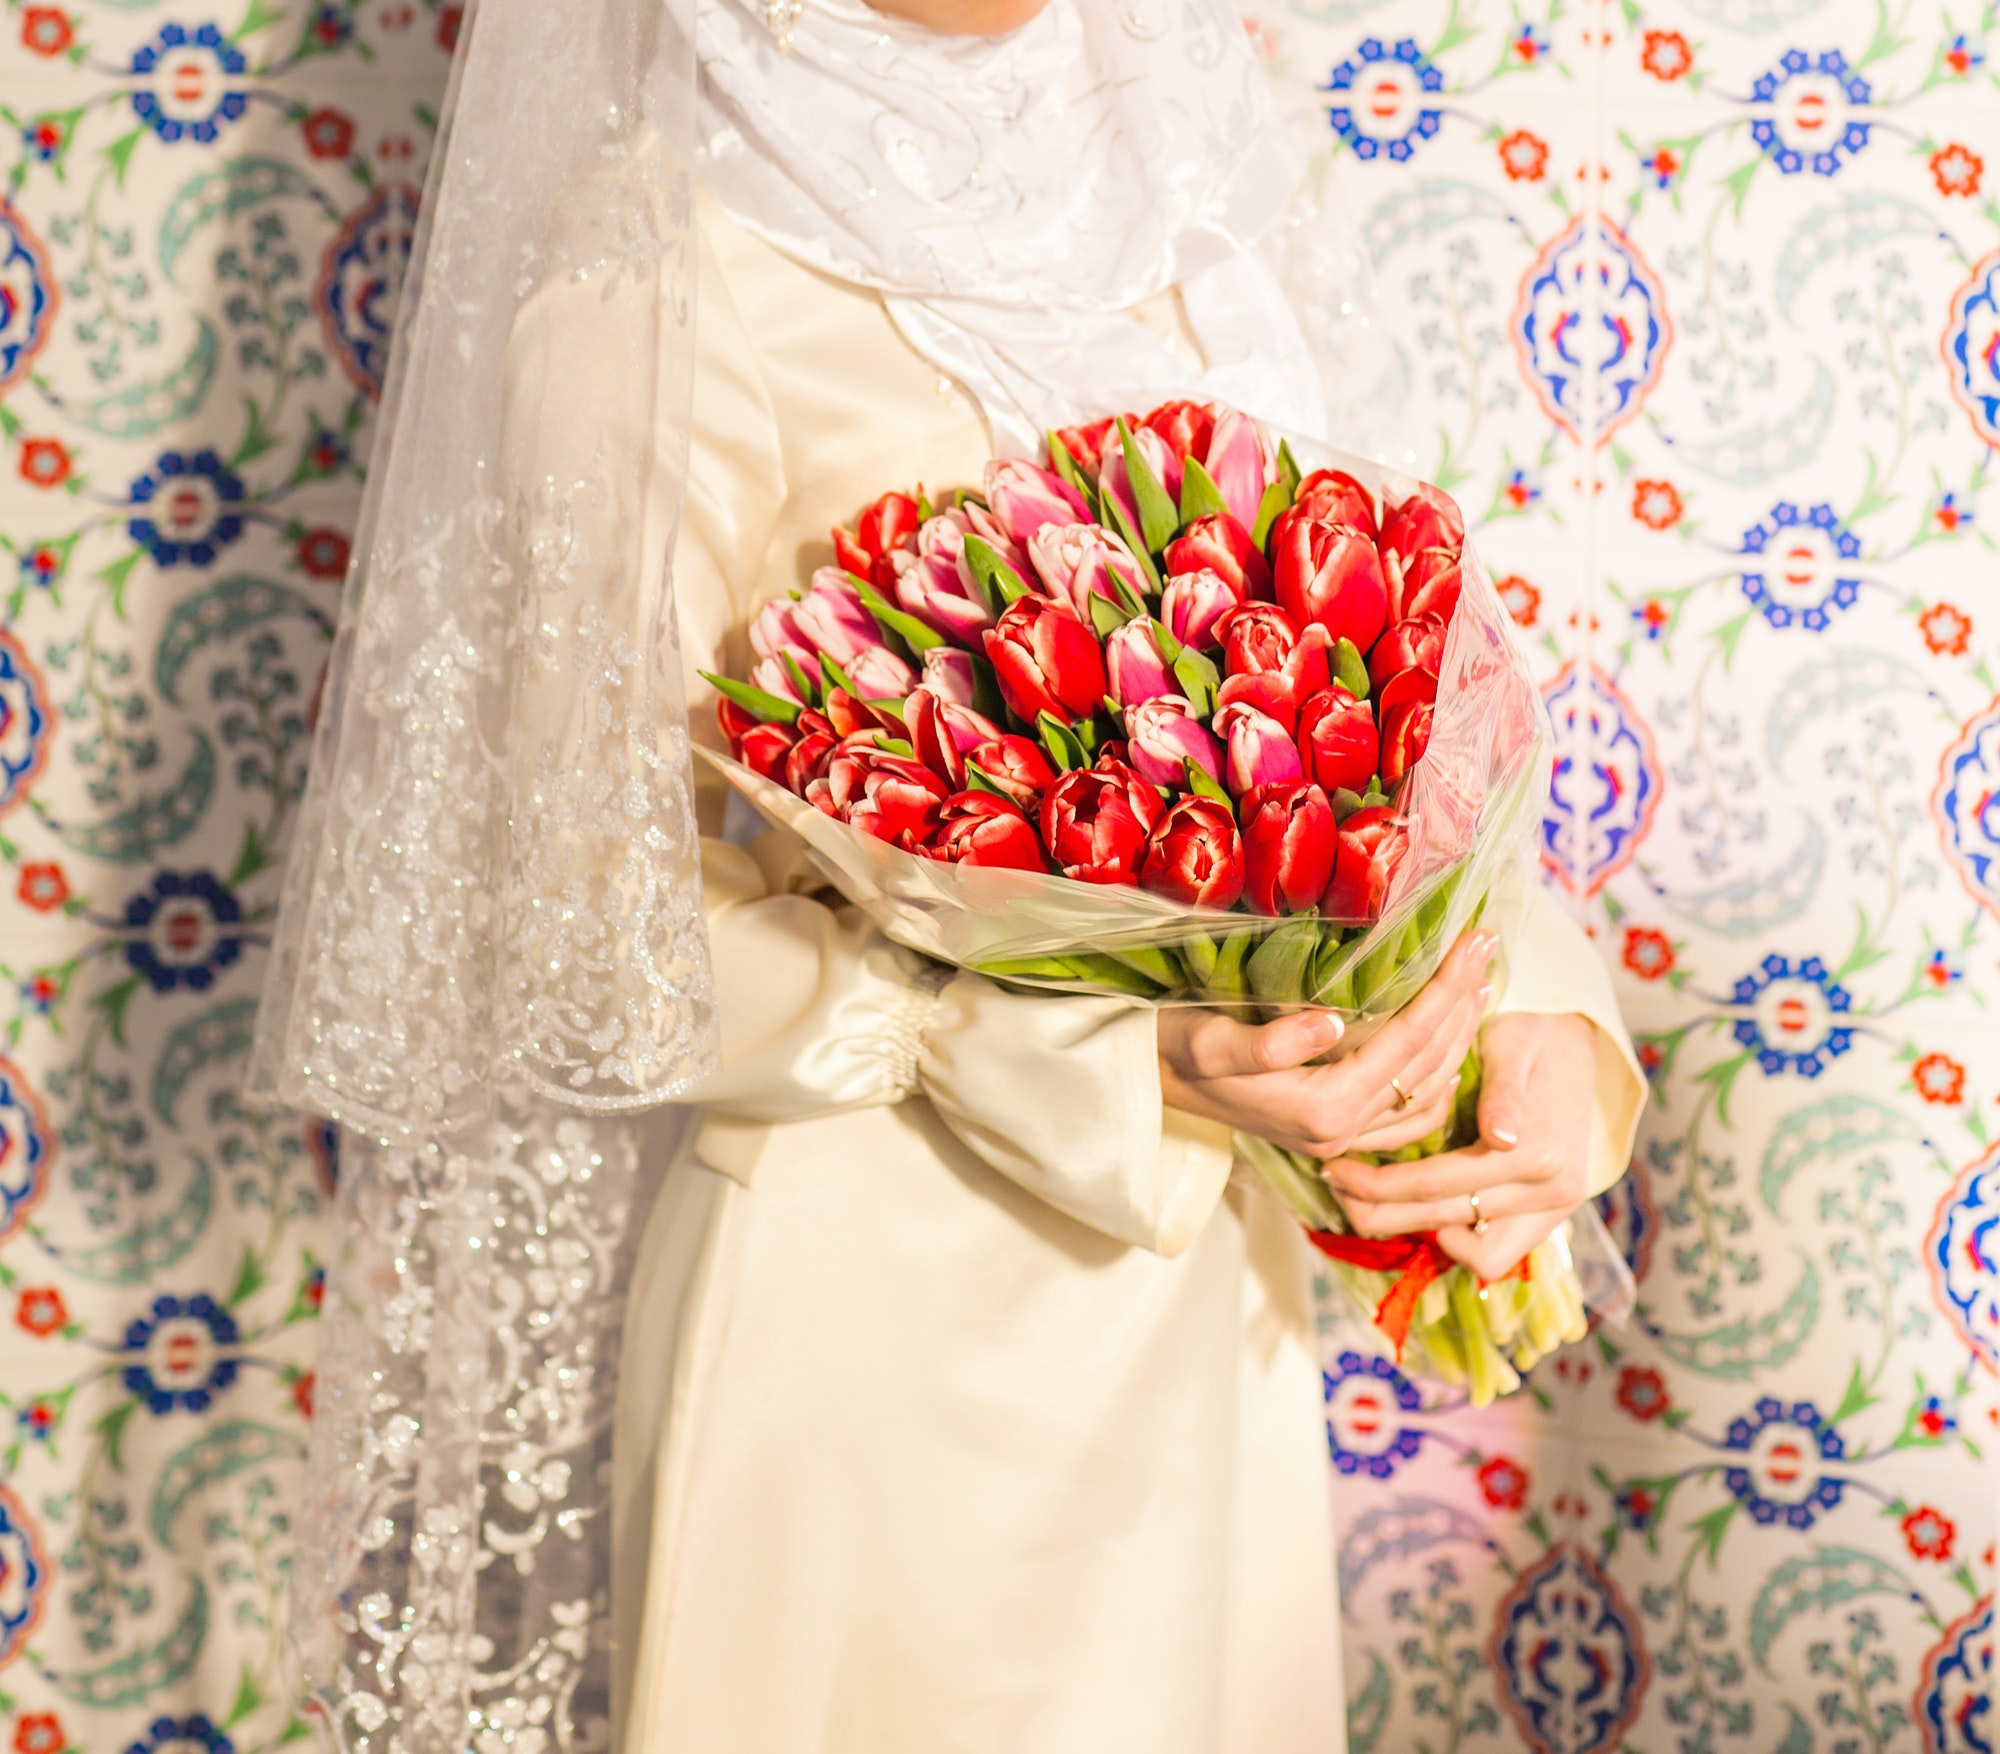 Young bride in islamic clothes posing with flowers indoors